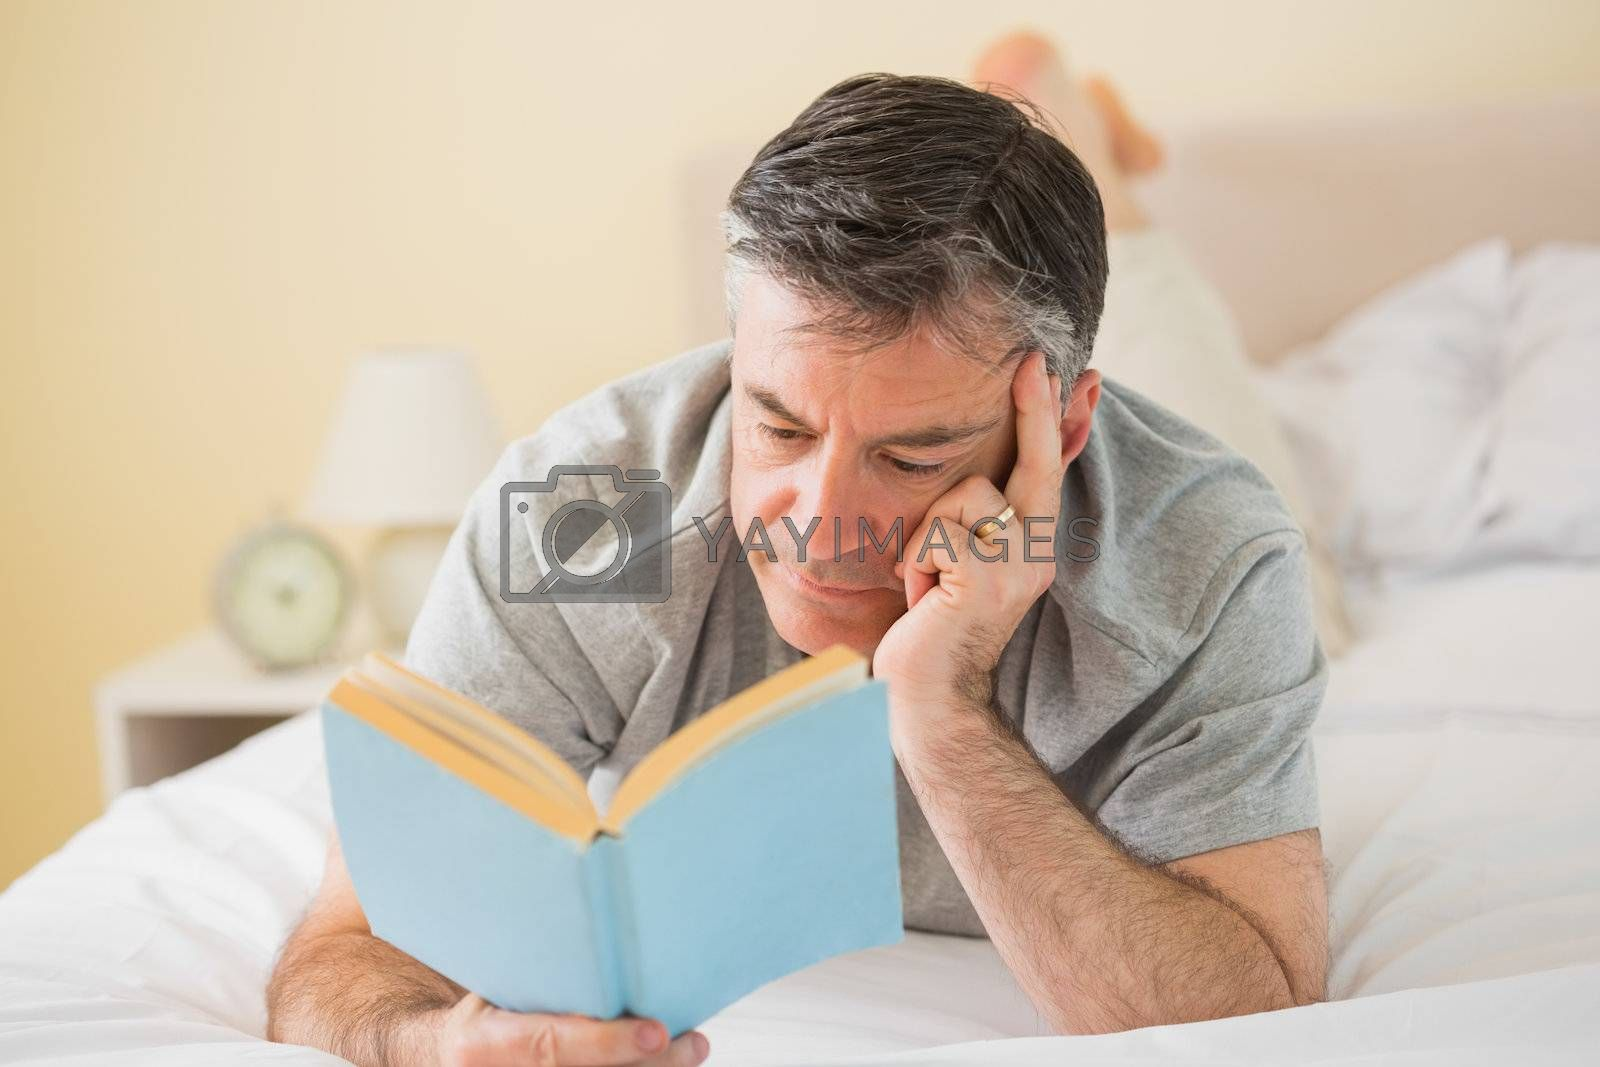 Concentrated man reading a book on his bed by Wavebreakmedia